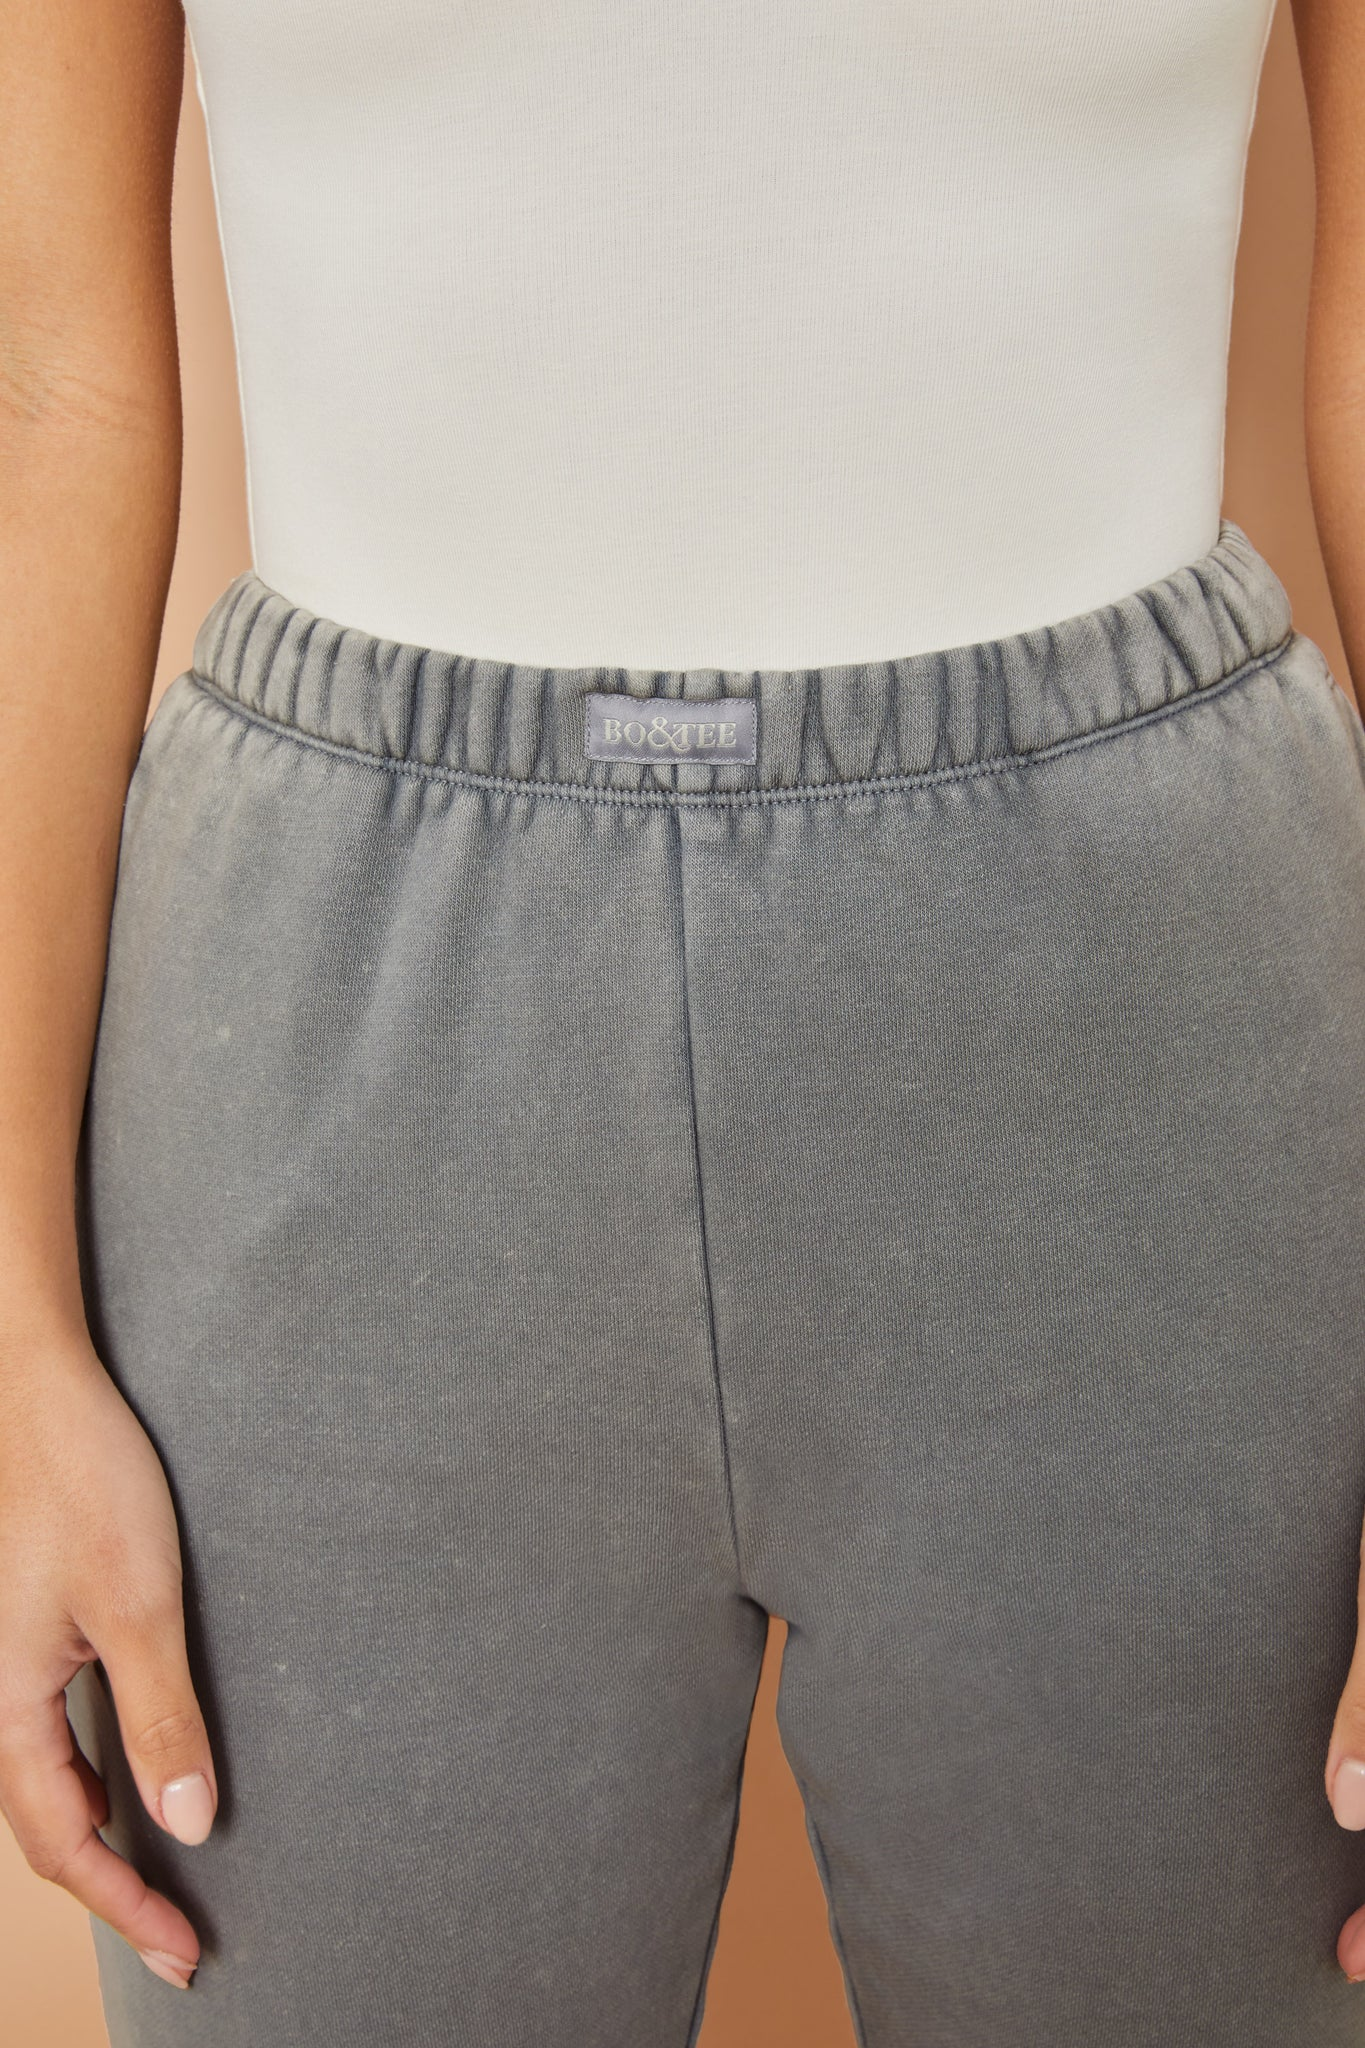 Home Run Petite - Joggers in Grey